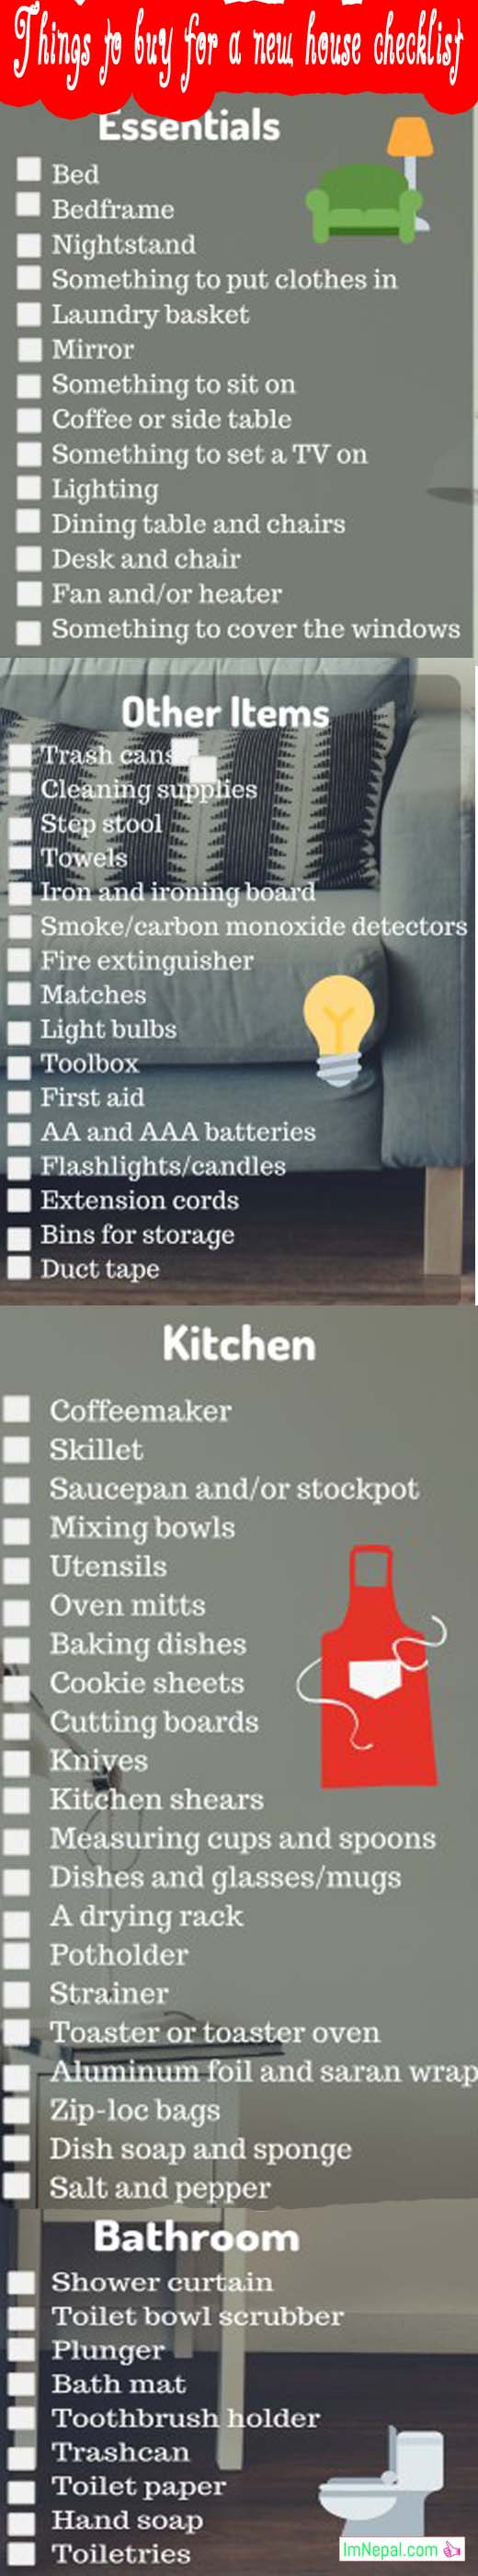 Things To Buy For A New House Checklist,Furnishing A New Home